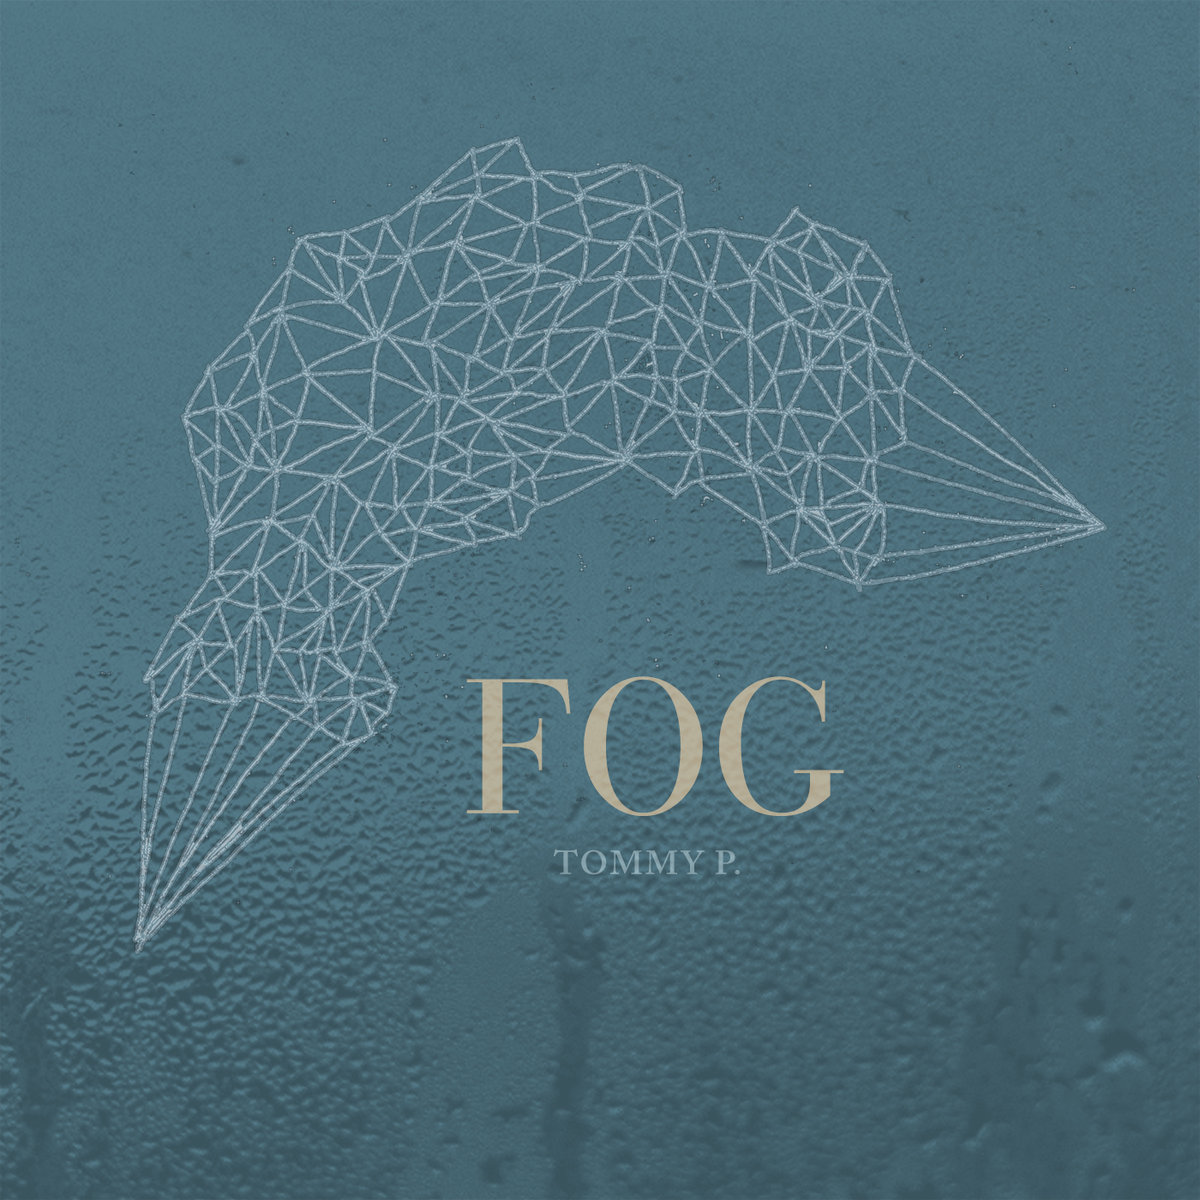 Tommy P. - Fog (artwork)